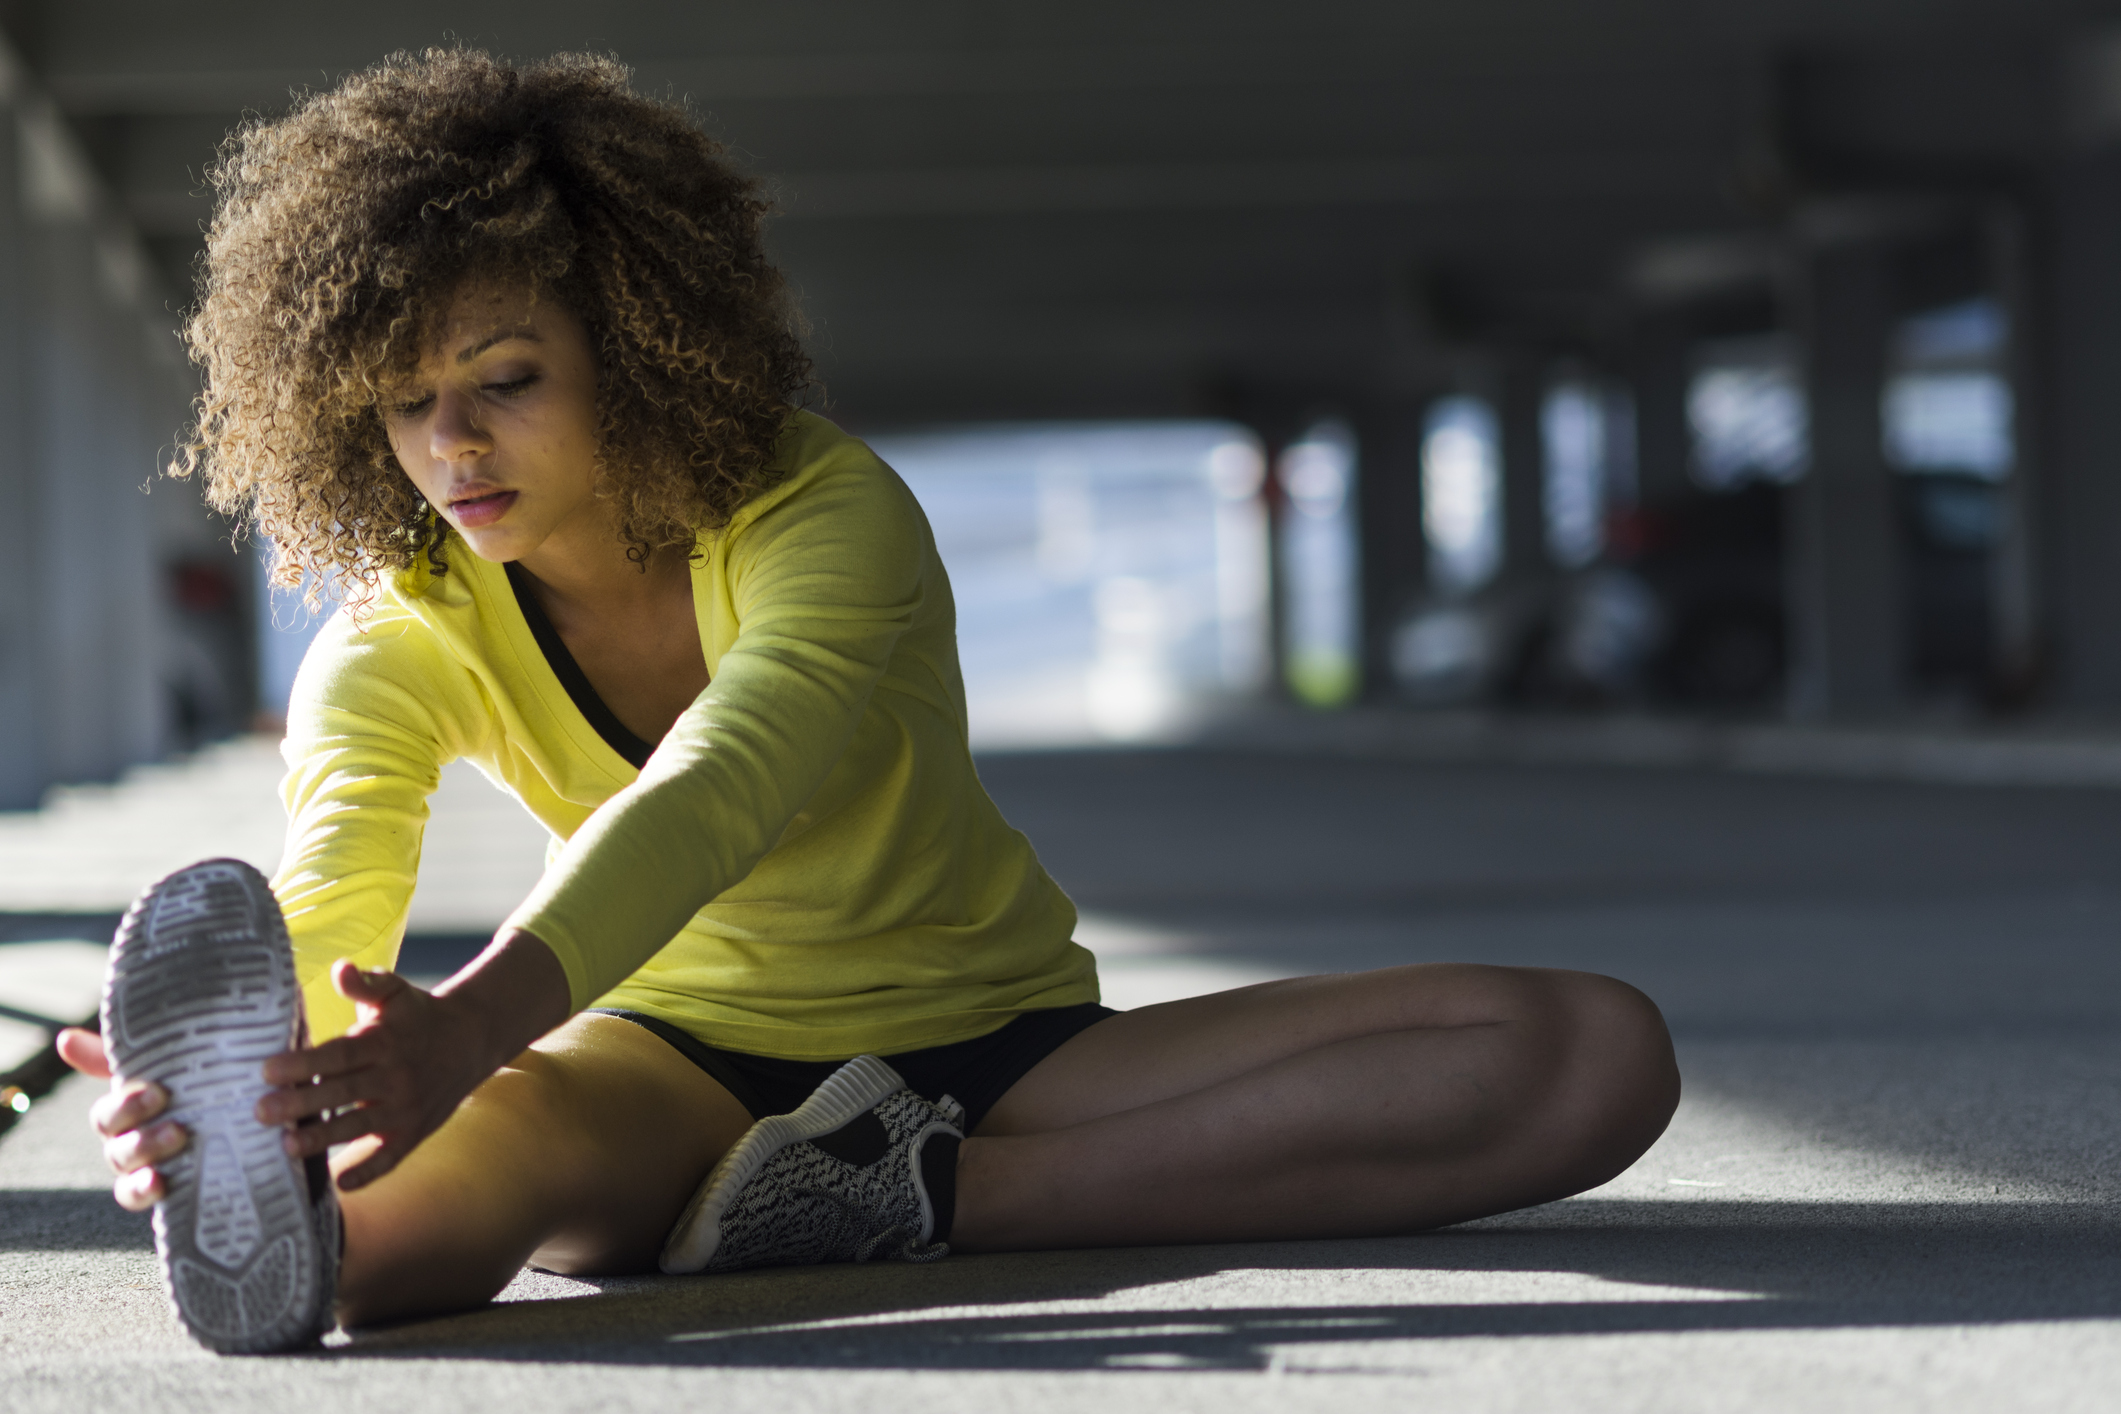 Generic photo of young woman stretching (Thinkstock/PA)